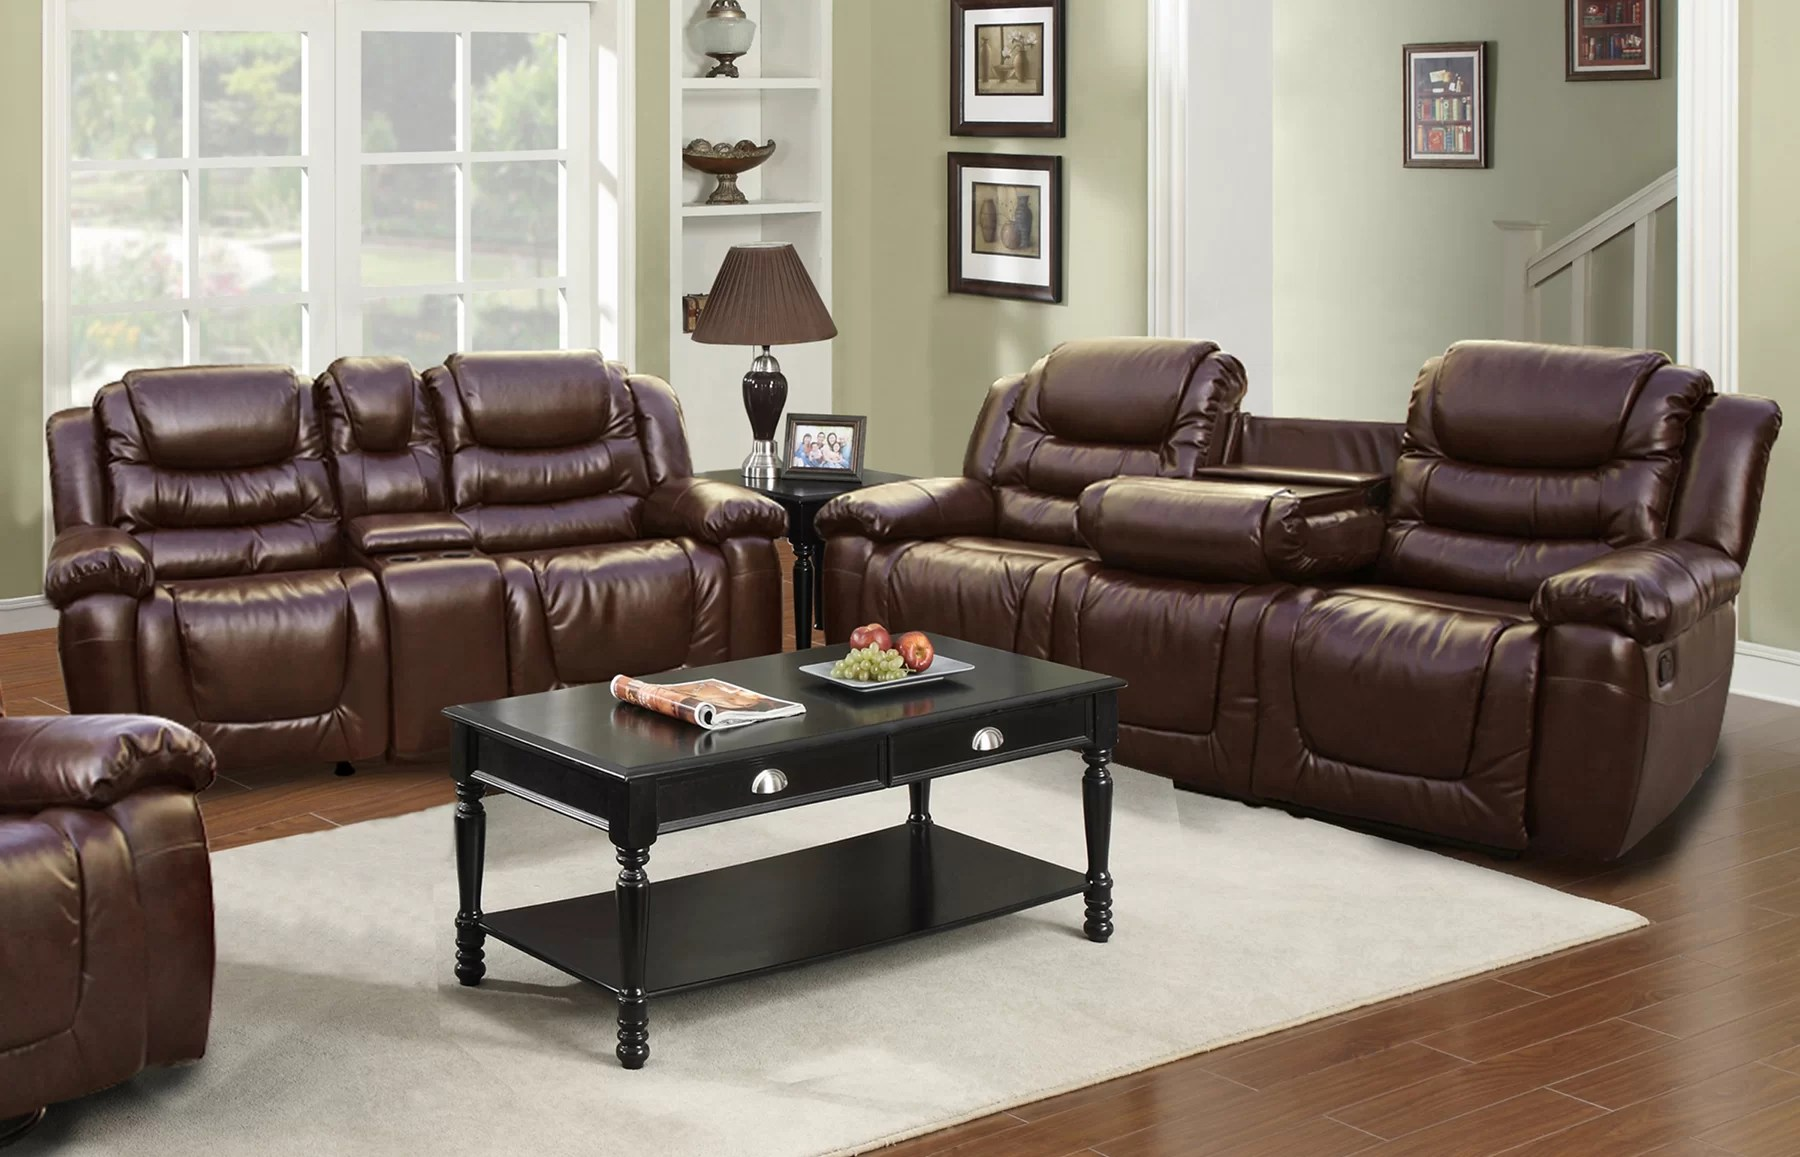 Sofa Set For Sale Ebay Ottawa 2 Piece Bonded Leather Reclining Living Room Sofa